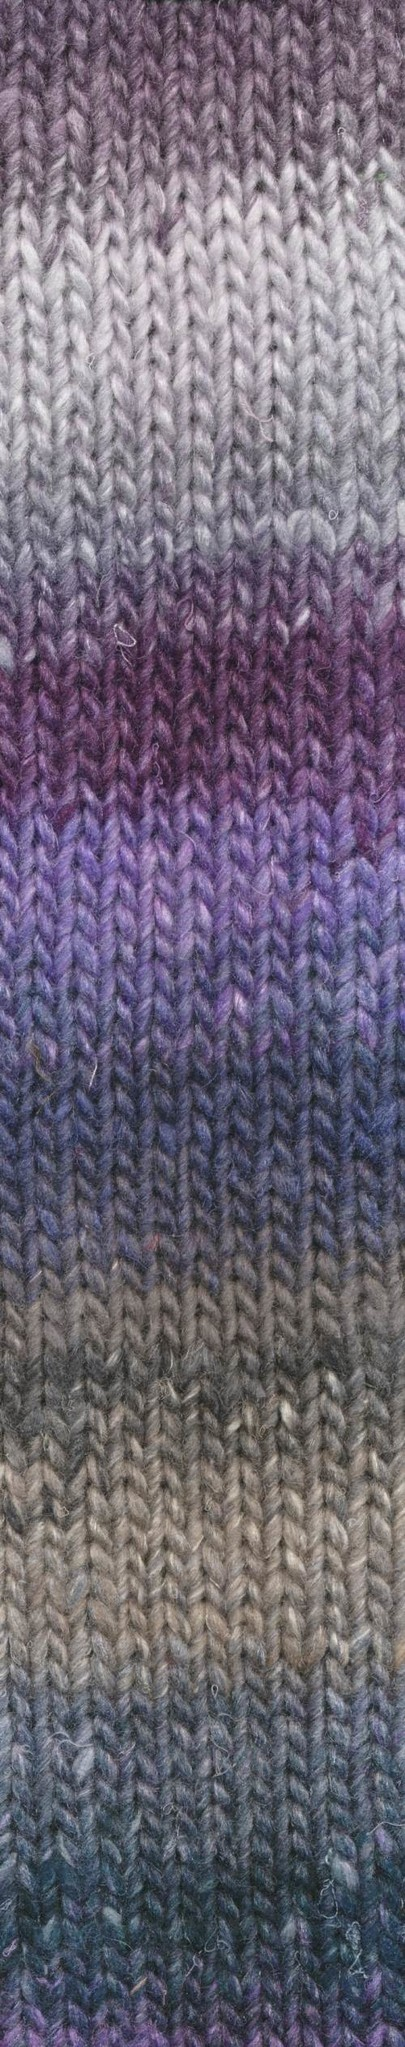 Noro Silk Garden Sock - 475 - Kingfisher